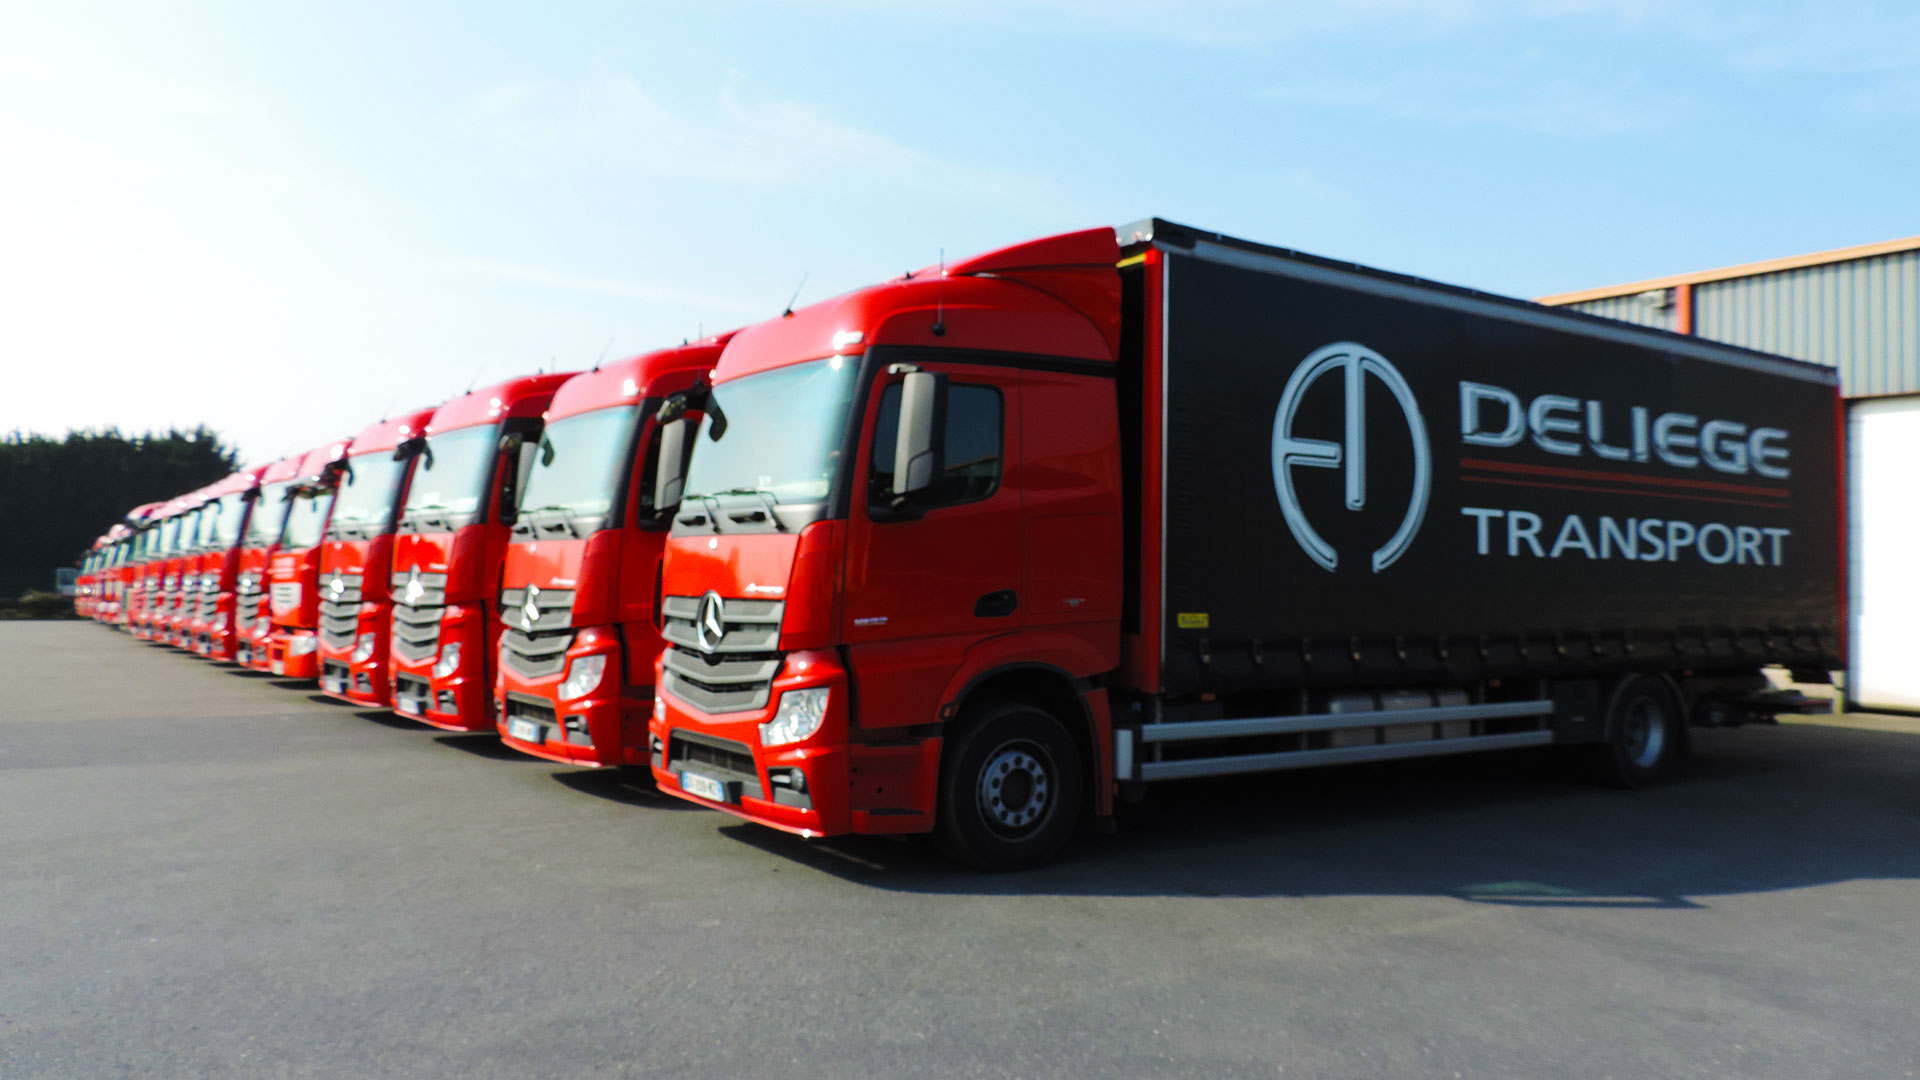 Camion transport deliege